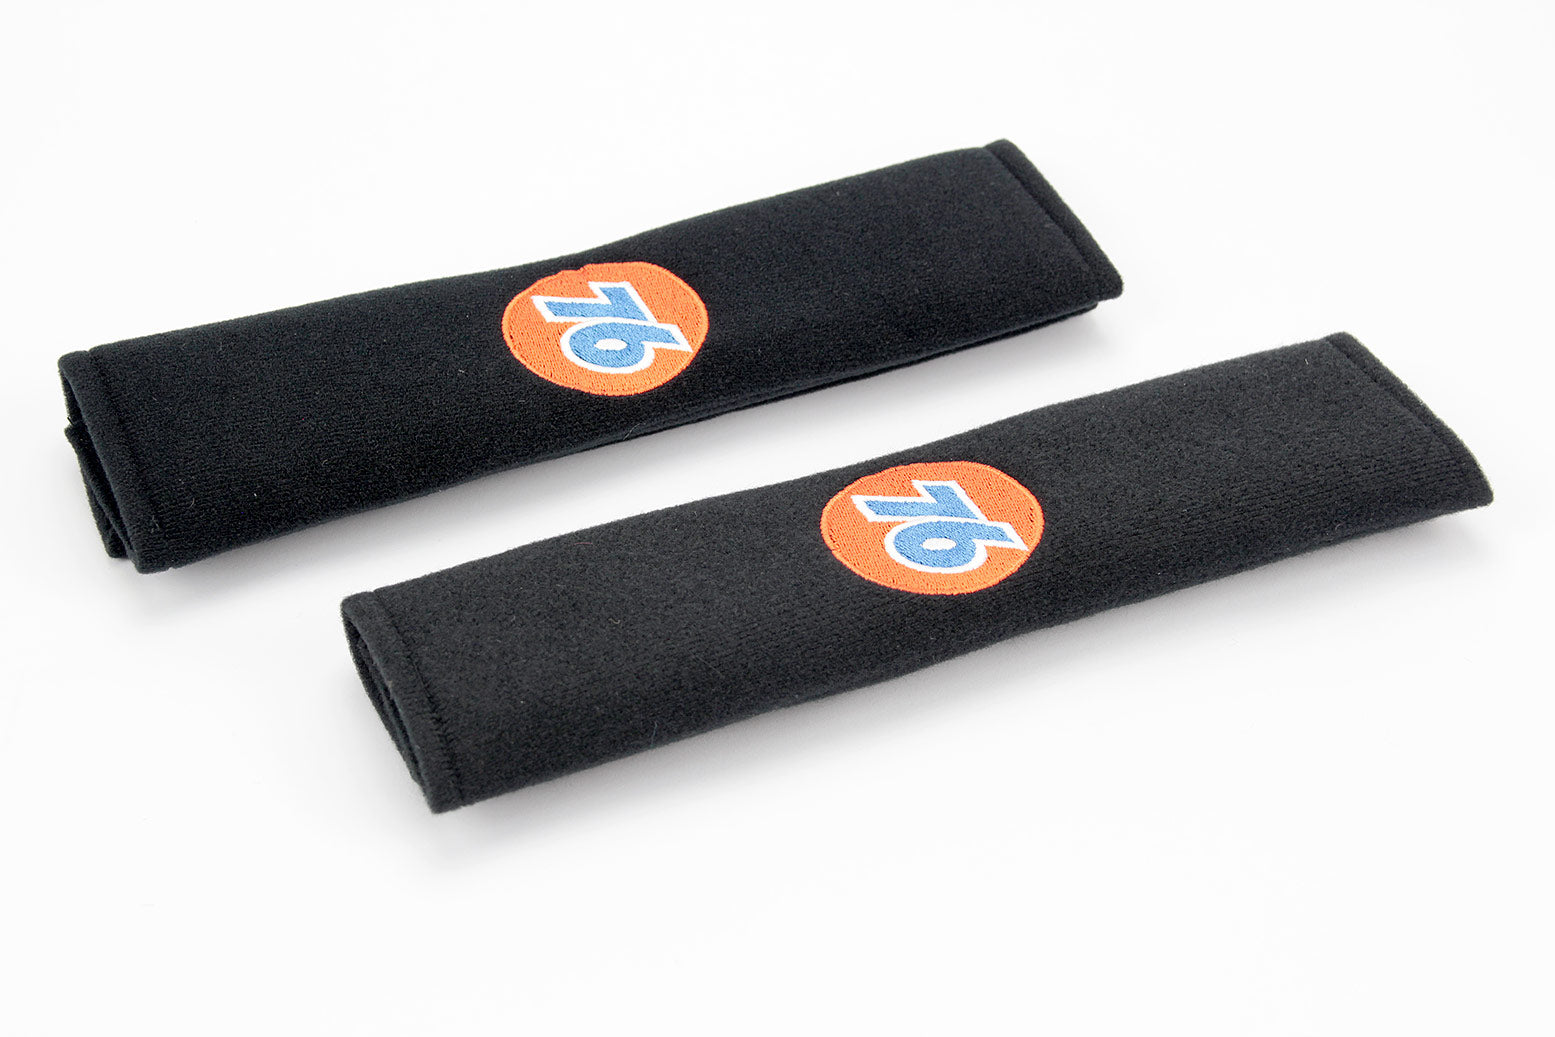 76 Gasoline logo embroidered on padded seat belt covers.